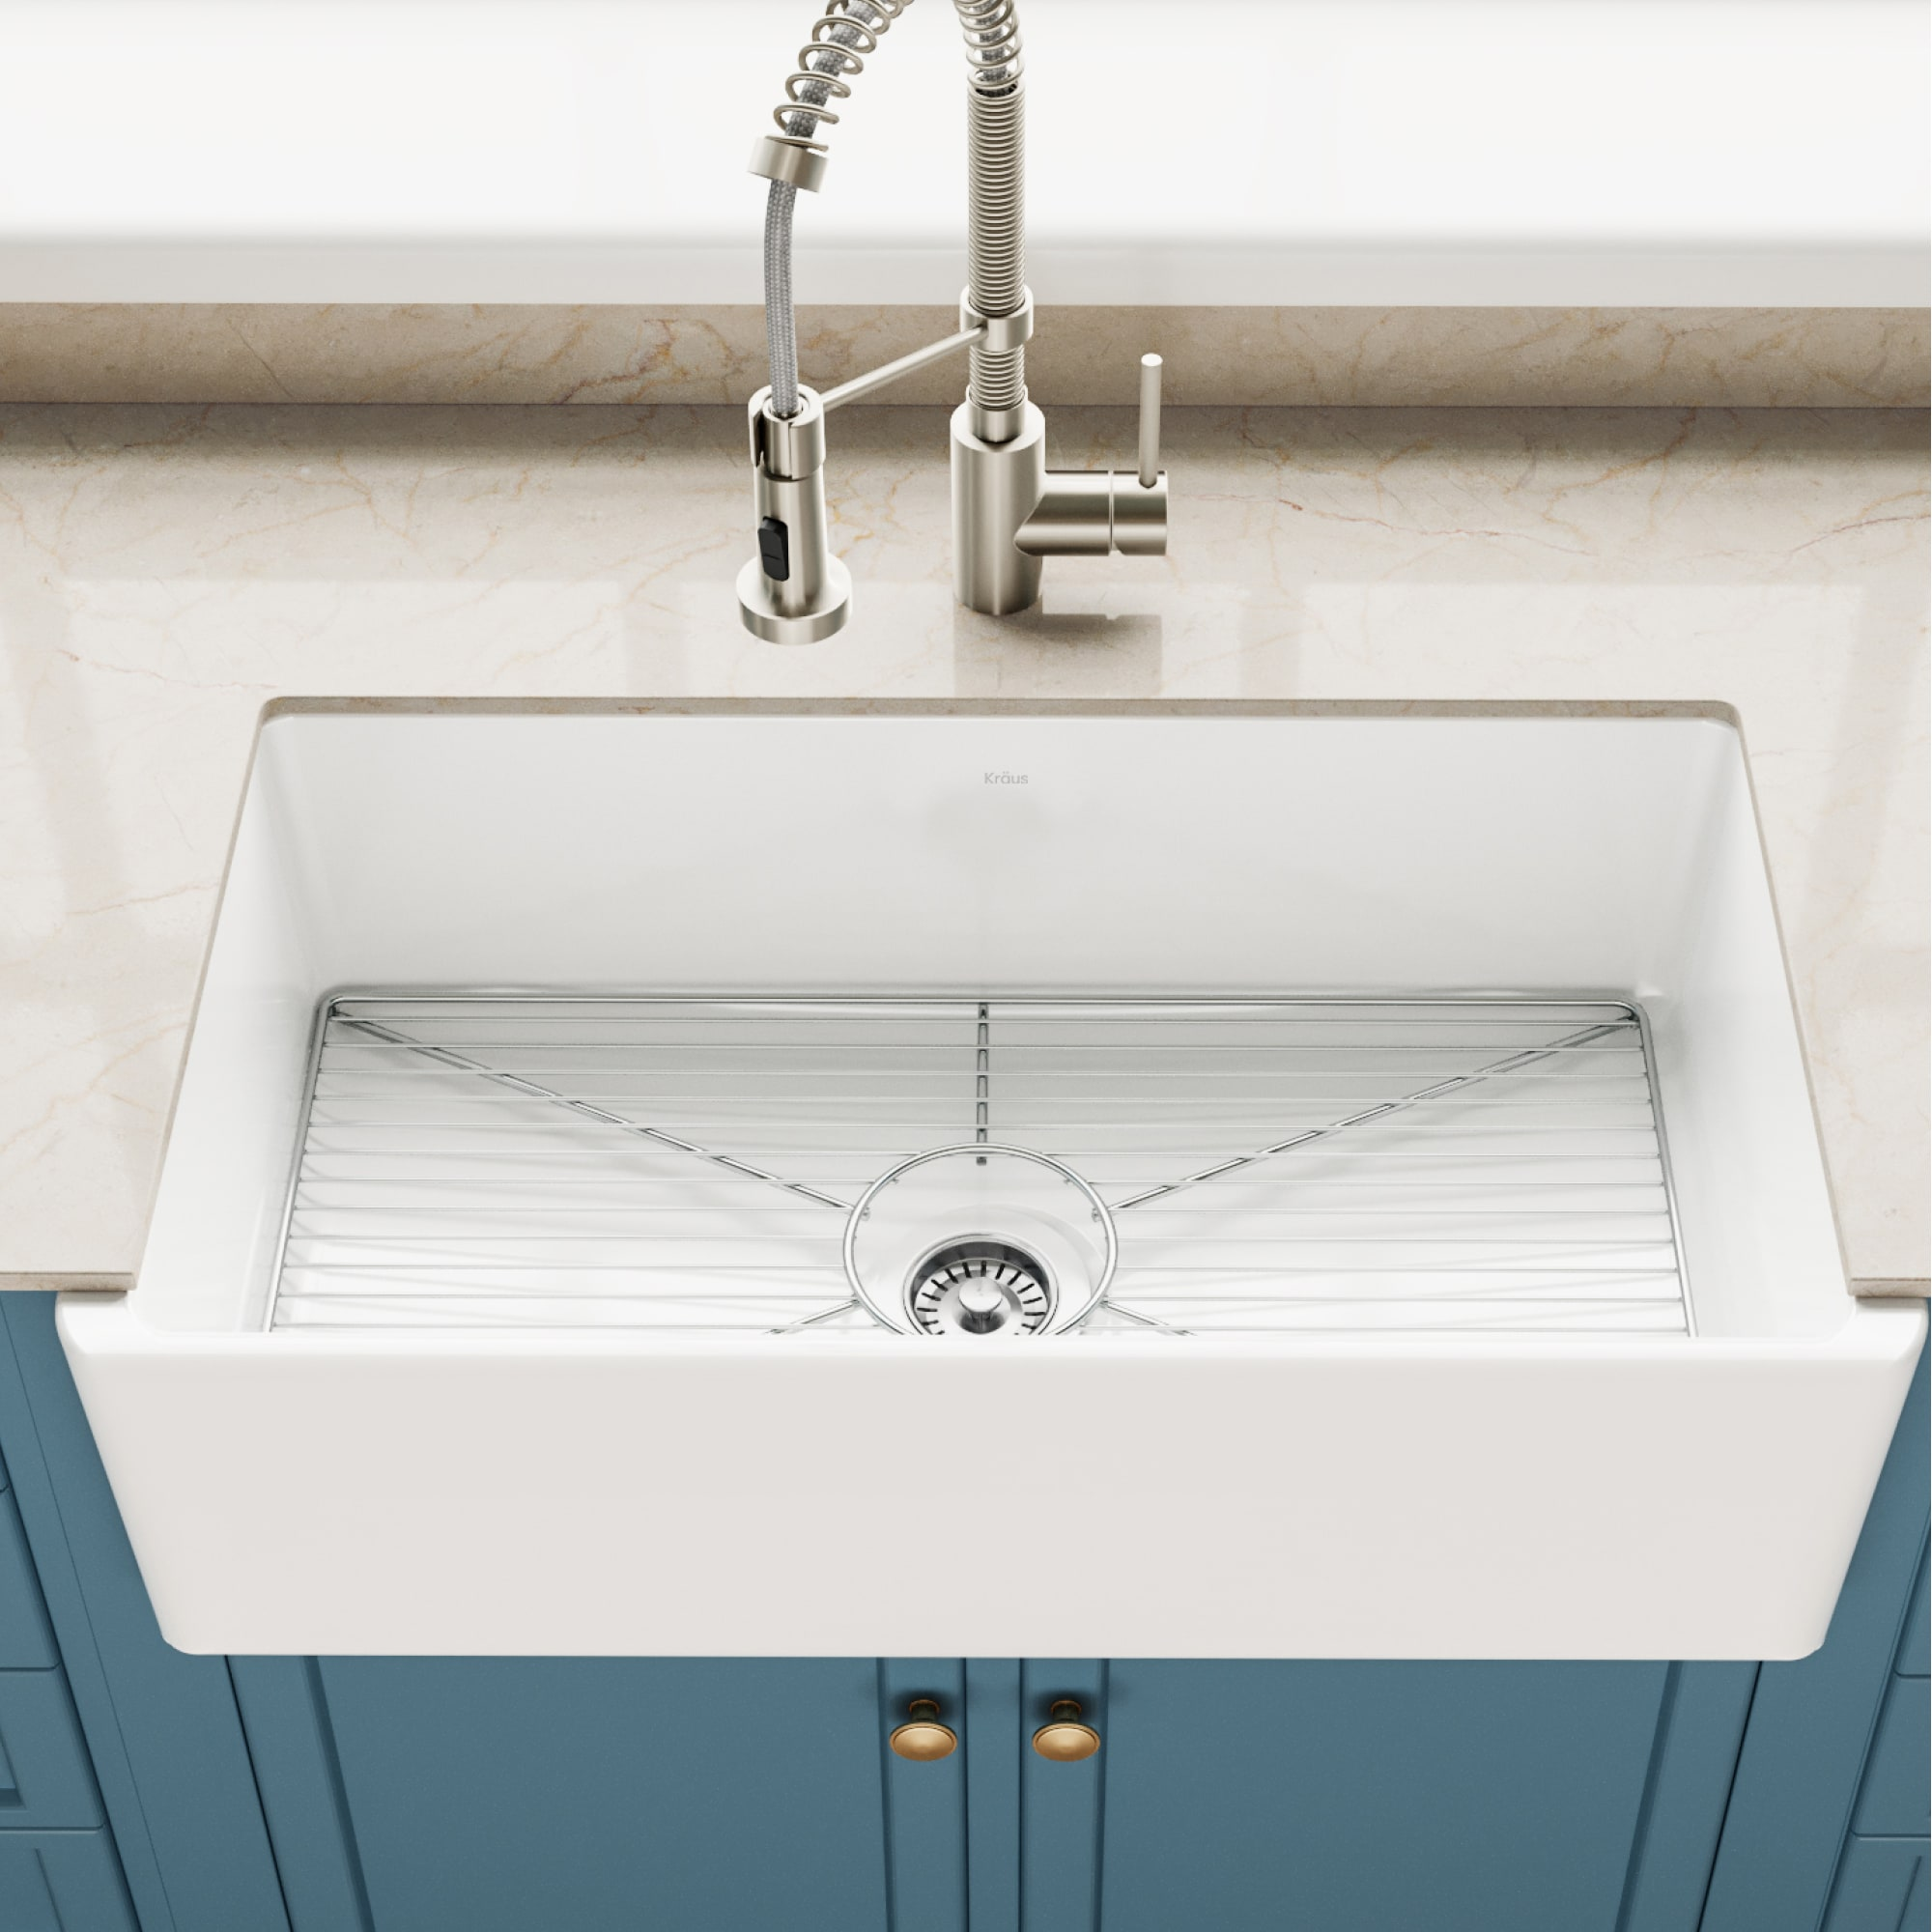 Kraus Kfr1 33gwh White Turino 33 Farmhouse Single Basin Fireclay Kitchen Sink With Basin Rack And Sound Dampening Faucetdirect Com